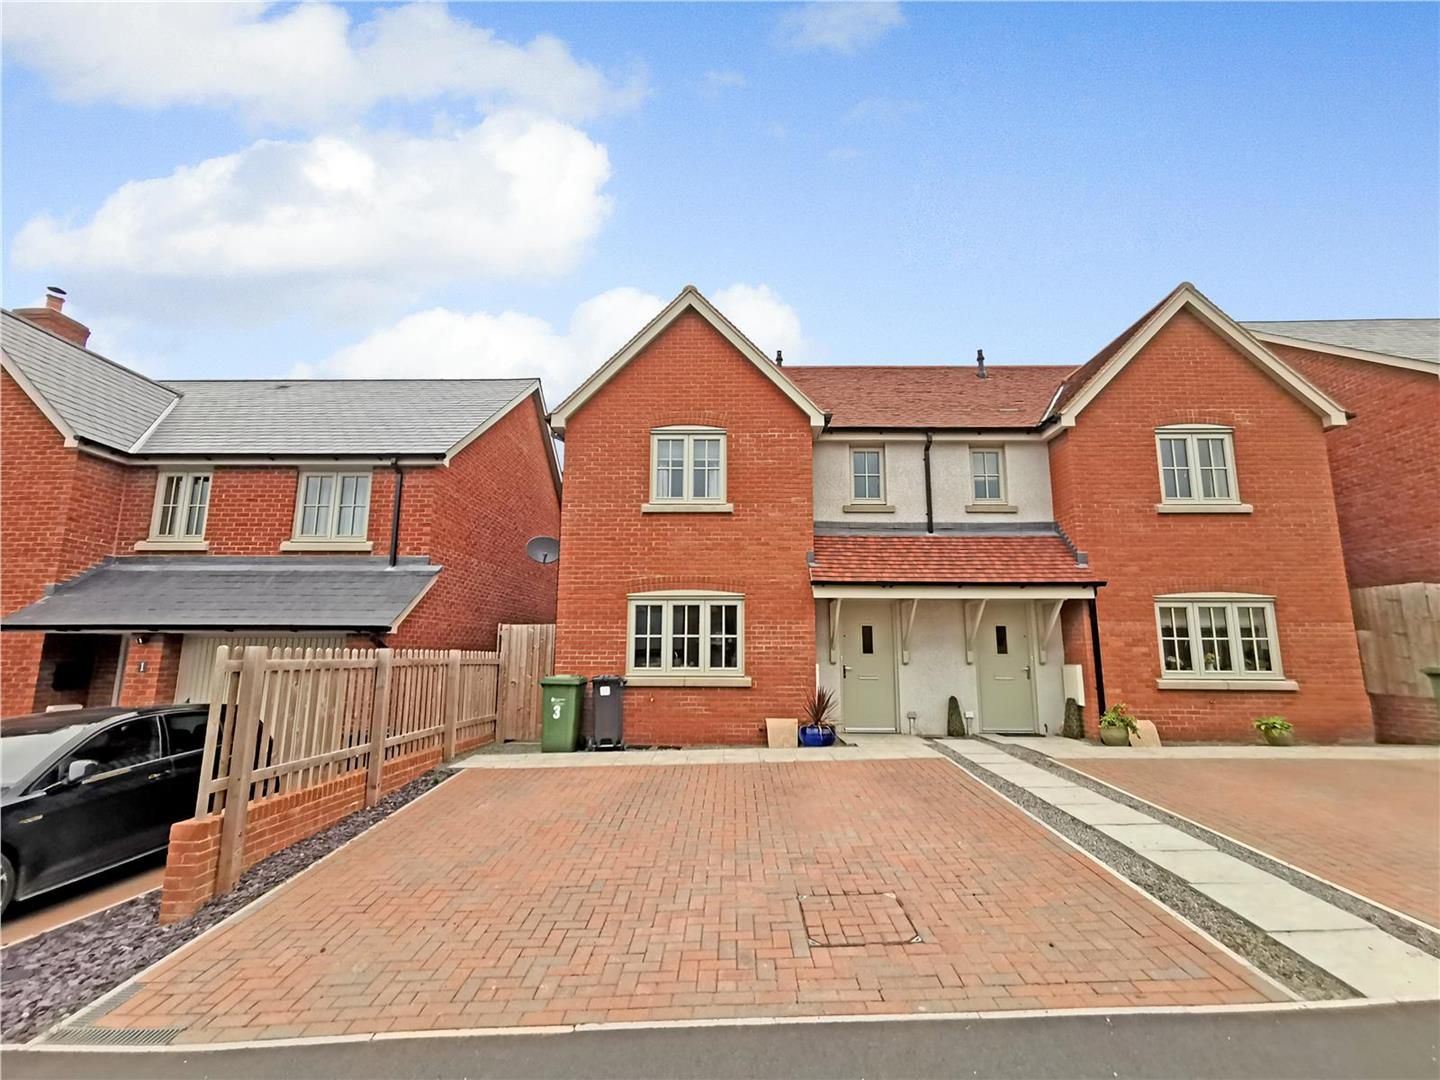 3 bed semi-detached for sale in Bodenham  - Property Image 1